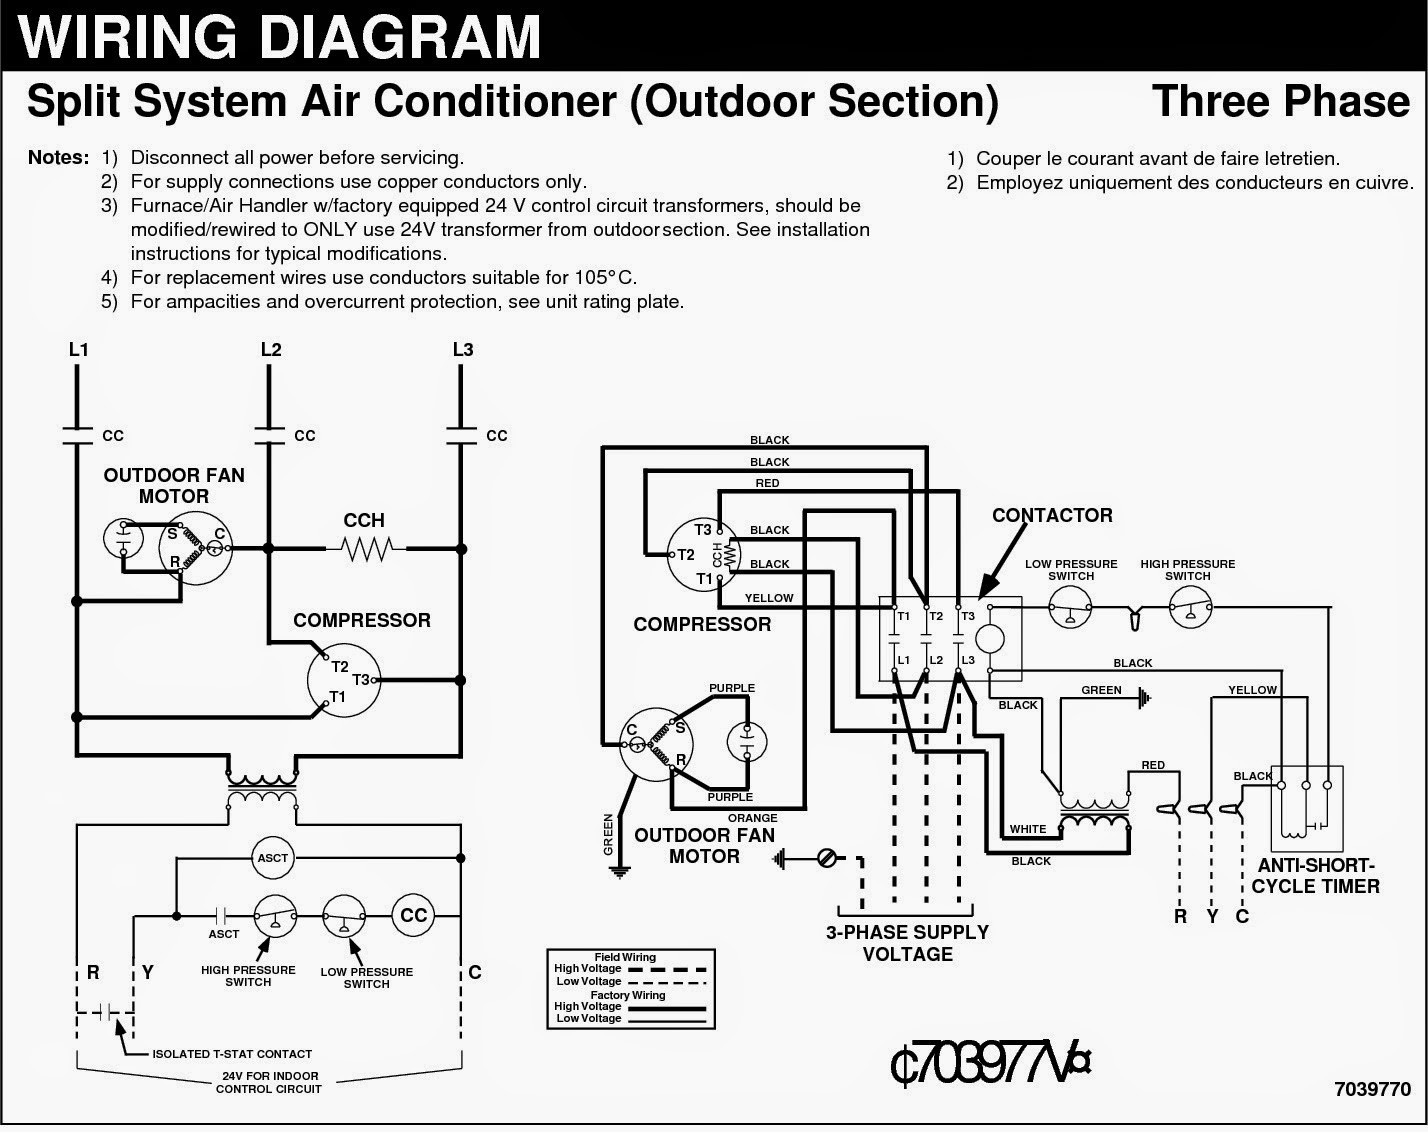 3 phase ac compressor wiring diagram wiring diagrams rheem ac contactor wiring diagrams ac 110v single phase compressor wiring diagram [ 1428 x 1132 Pixel ]